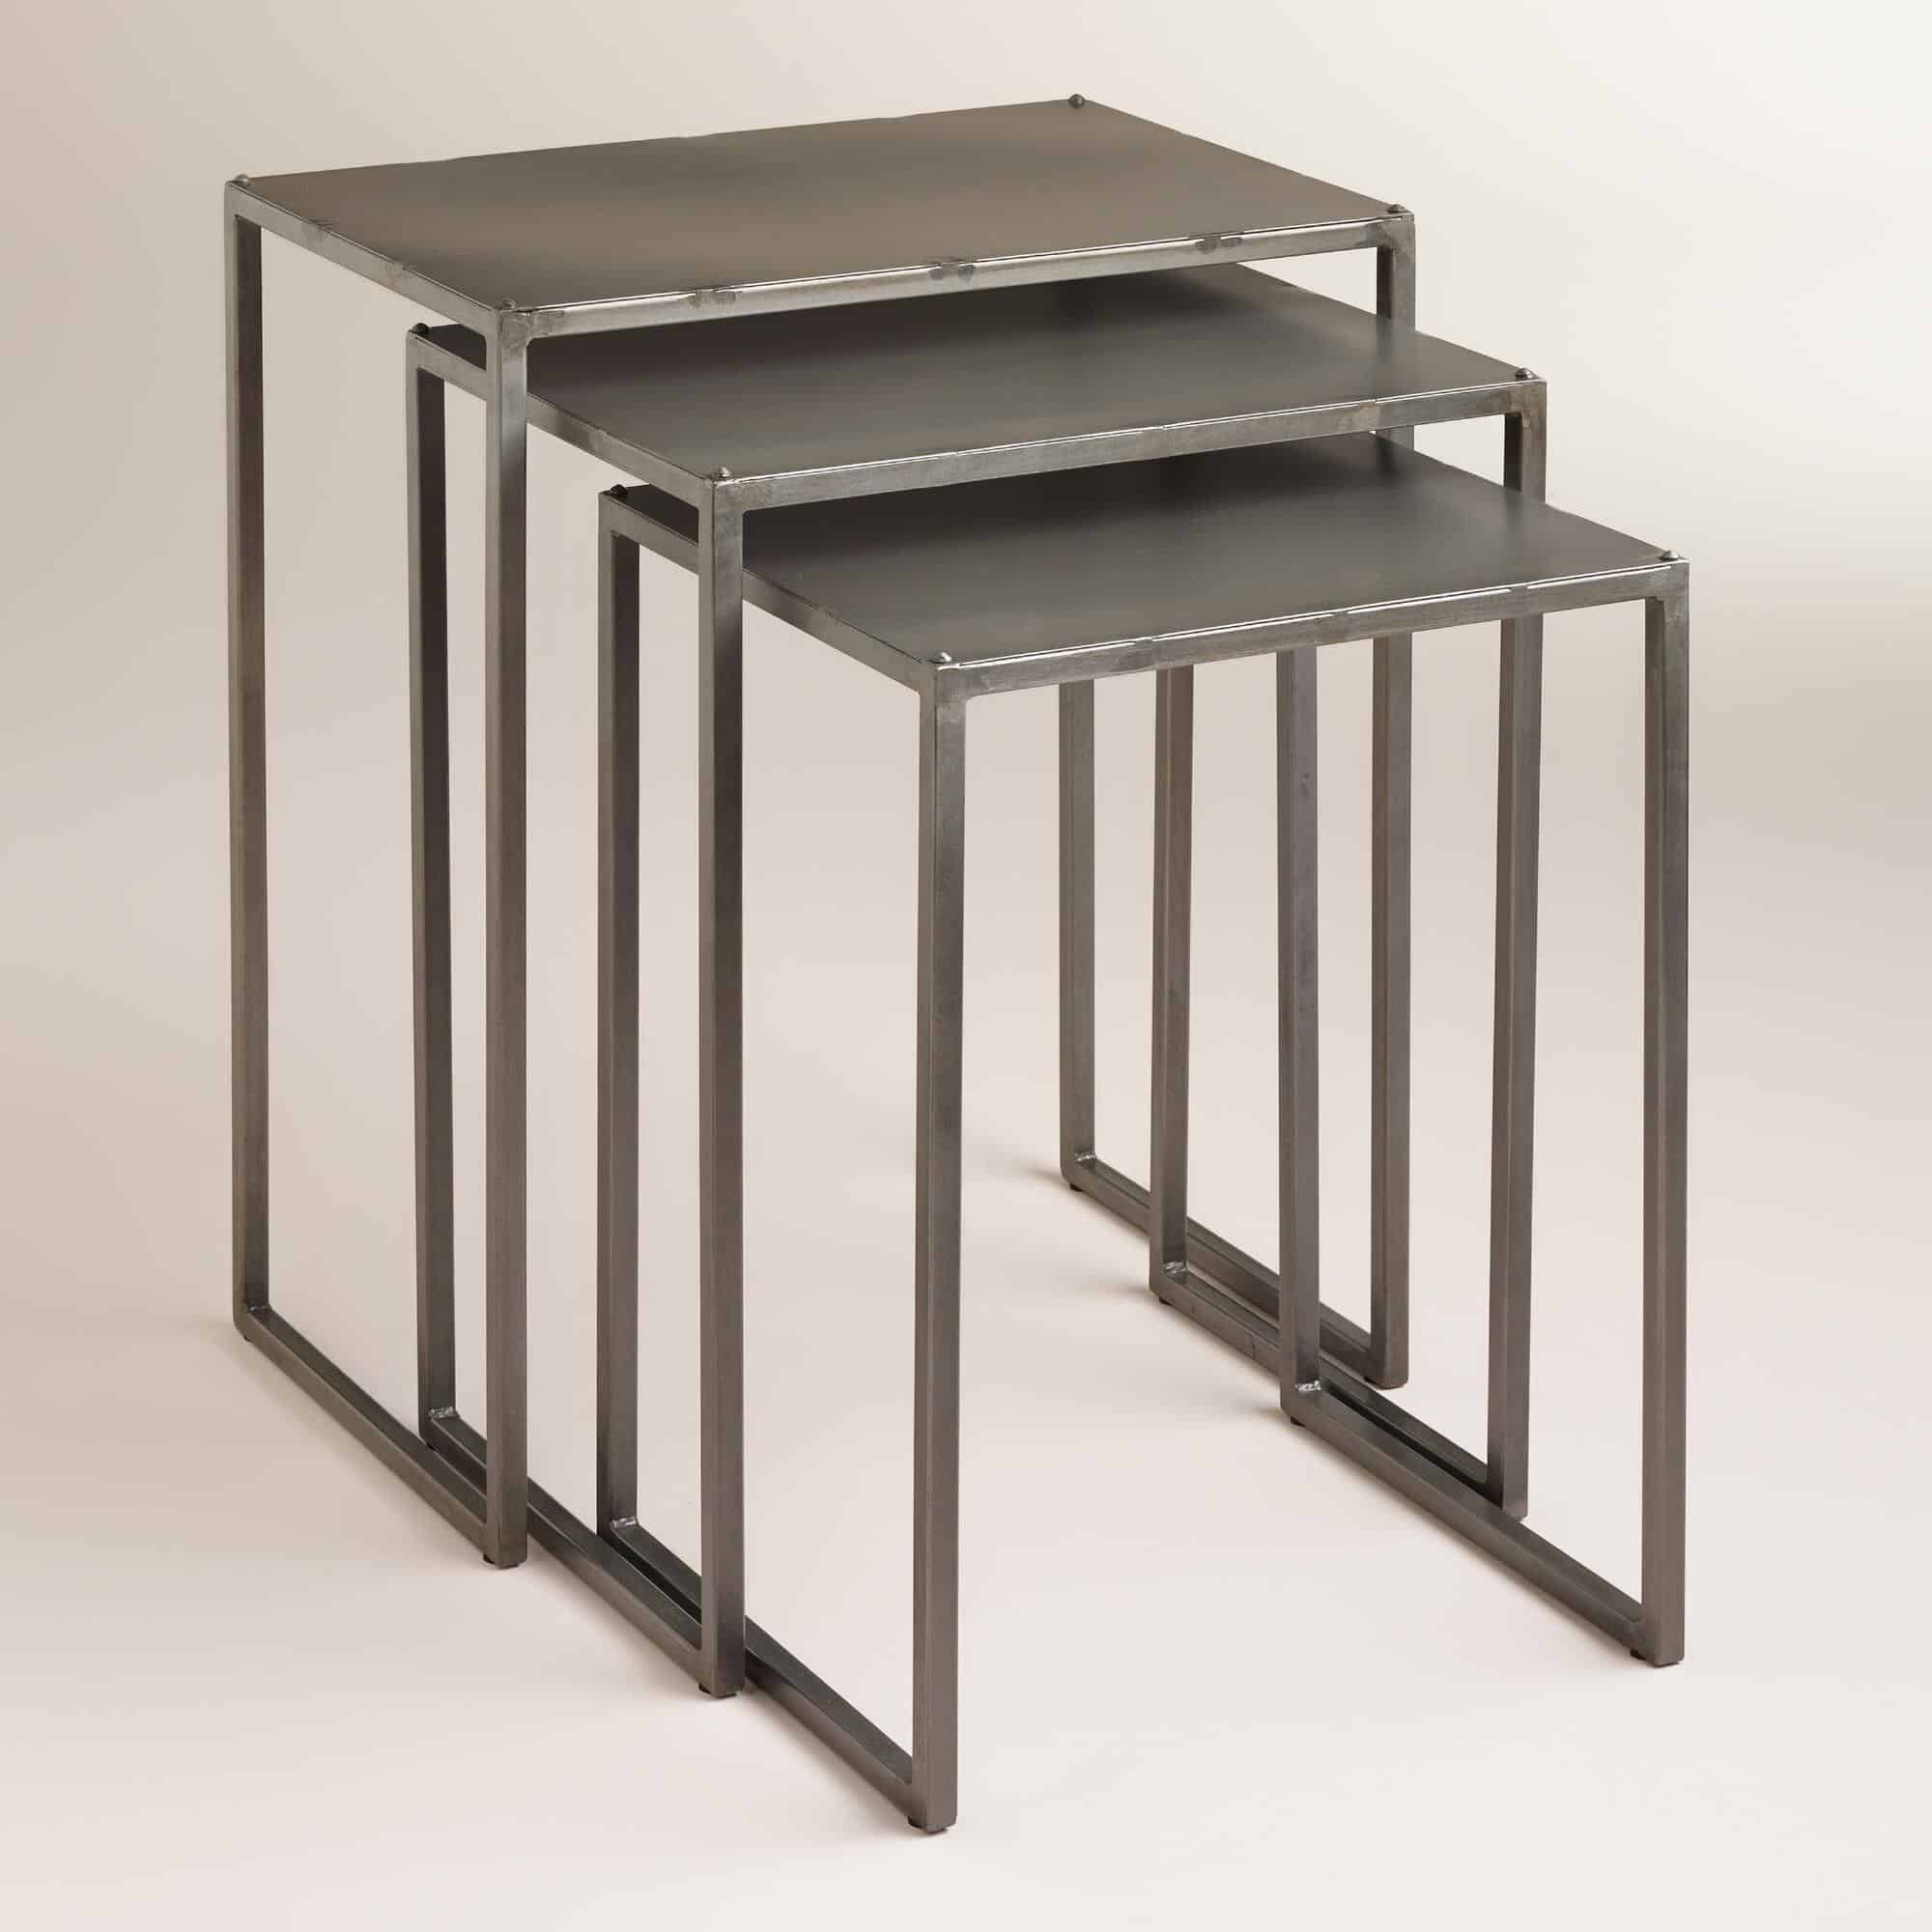 CostPlus nesting tables